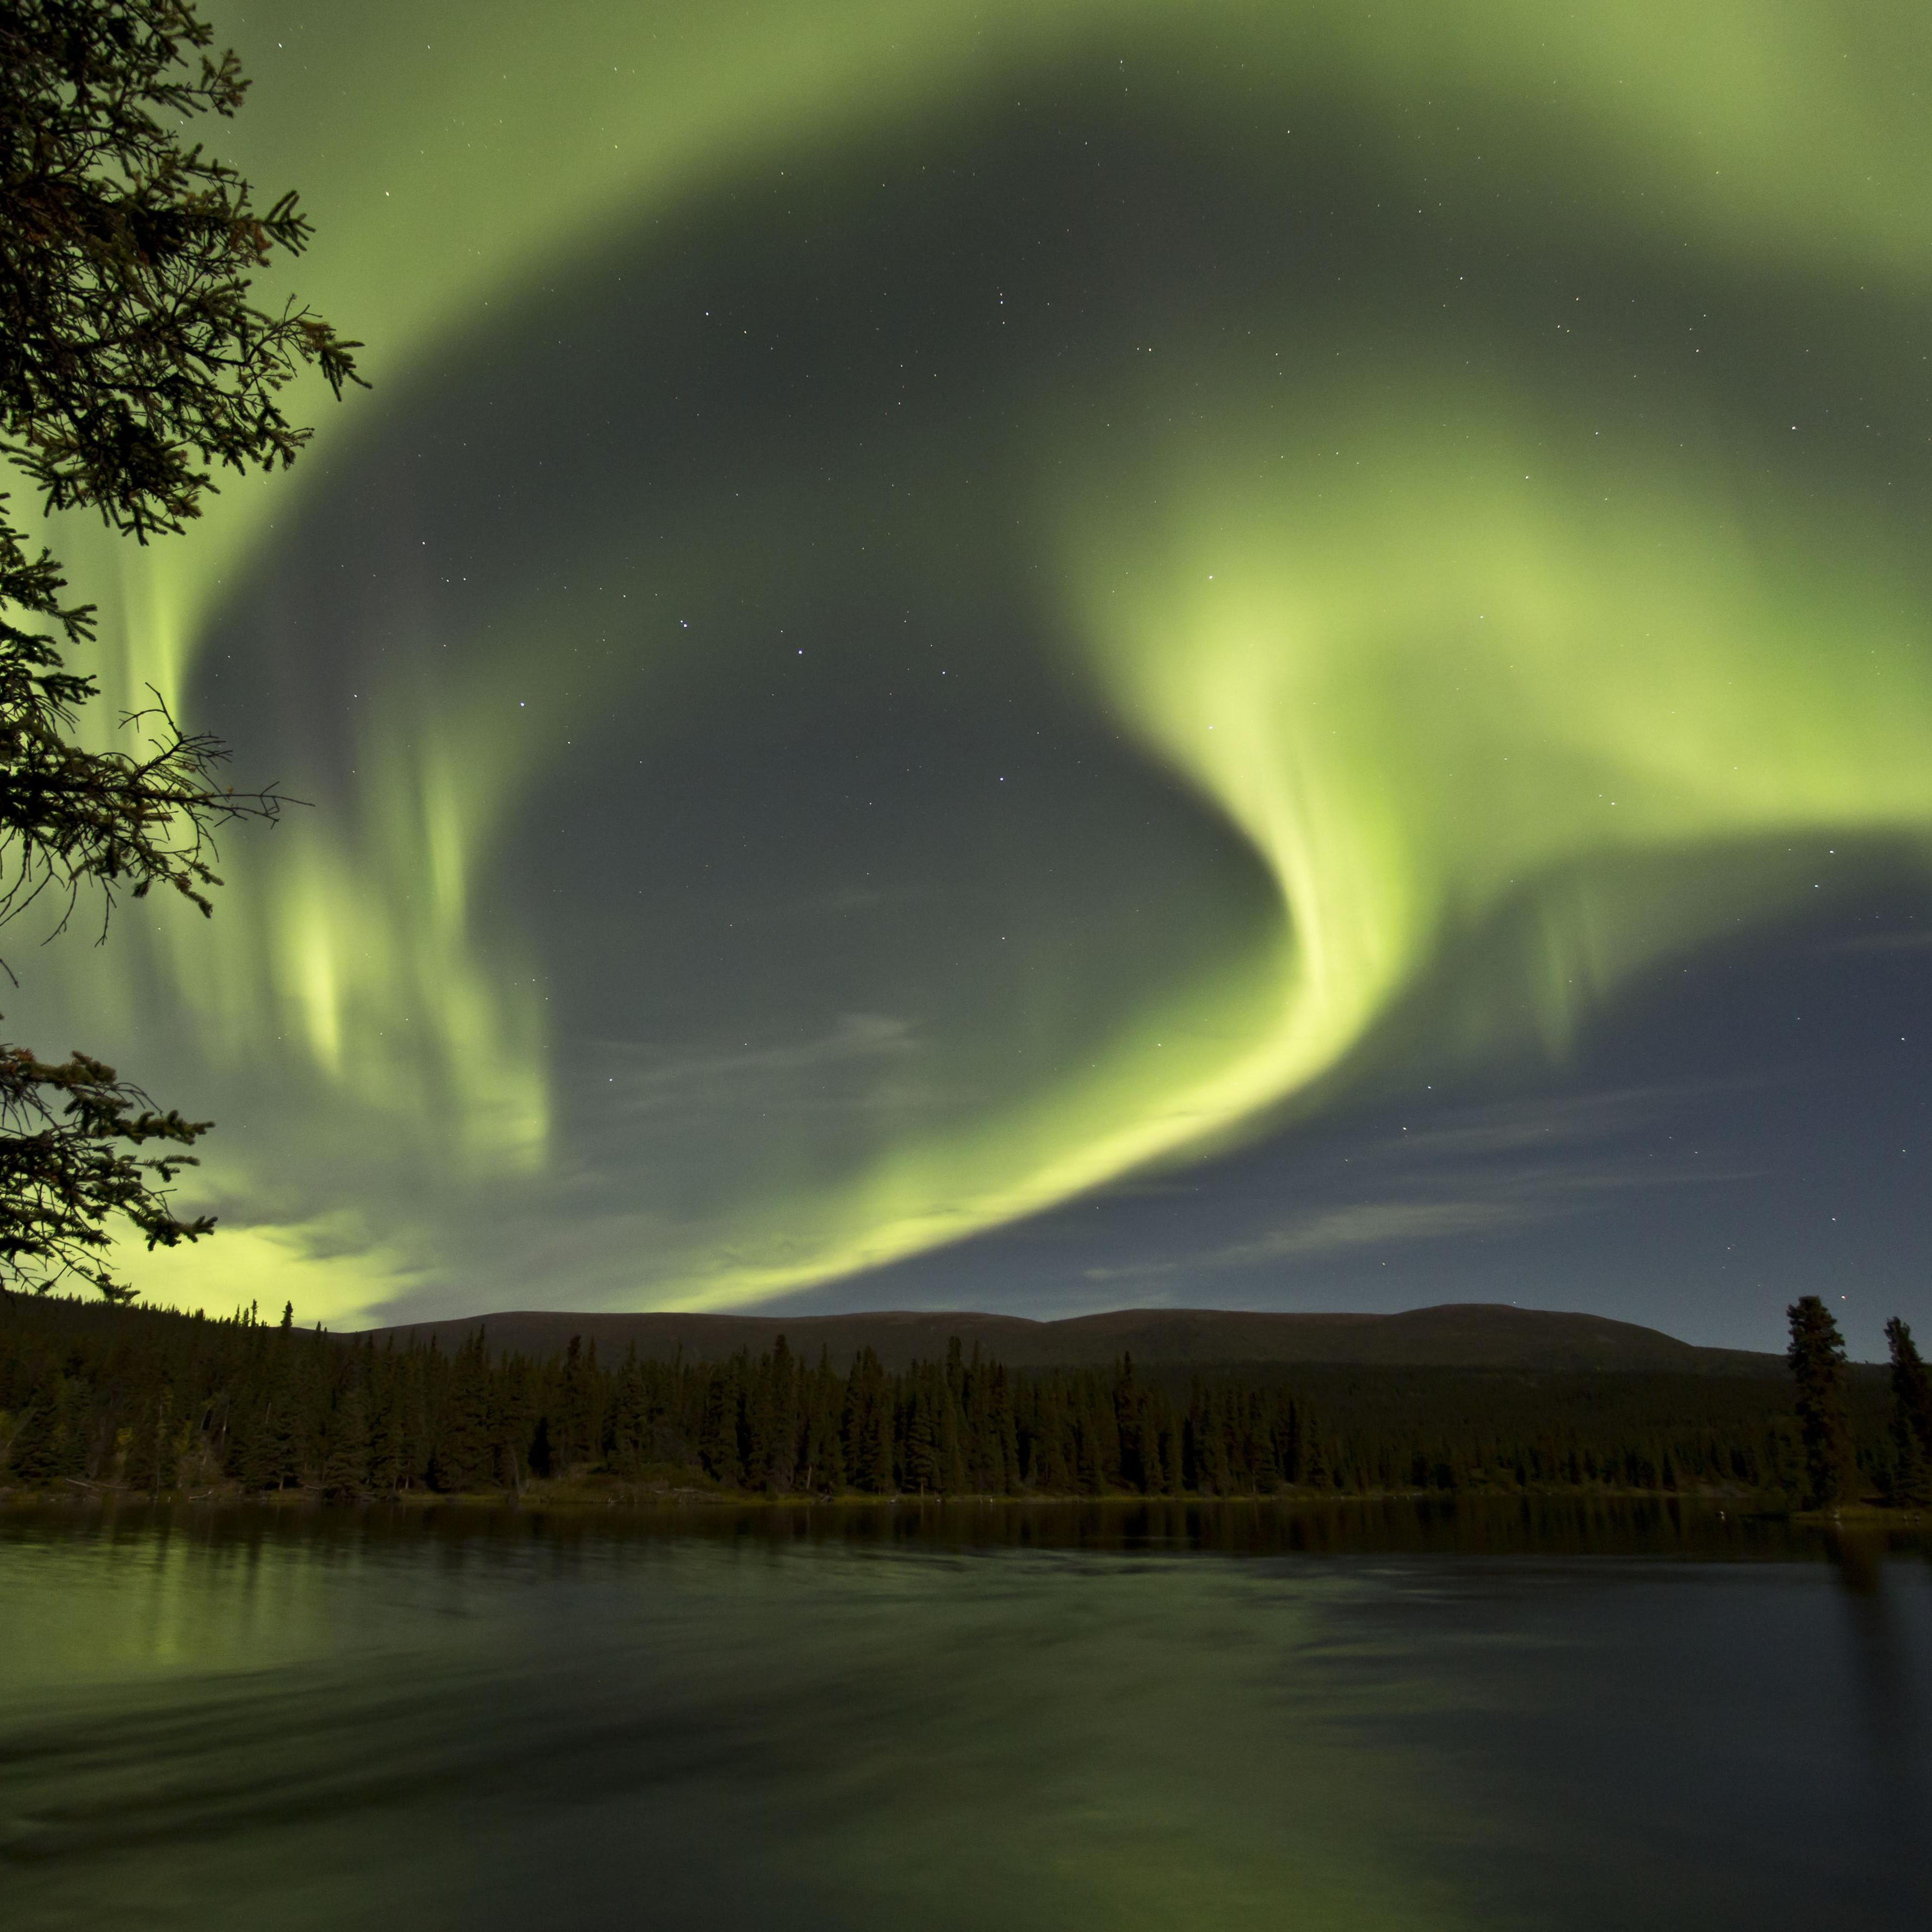 WHEN AND WHERE TO SEE THE AURORA BOREALIS IN THE YUKON